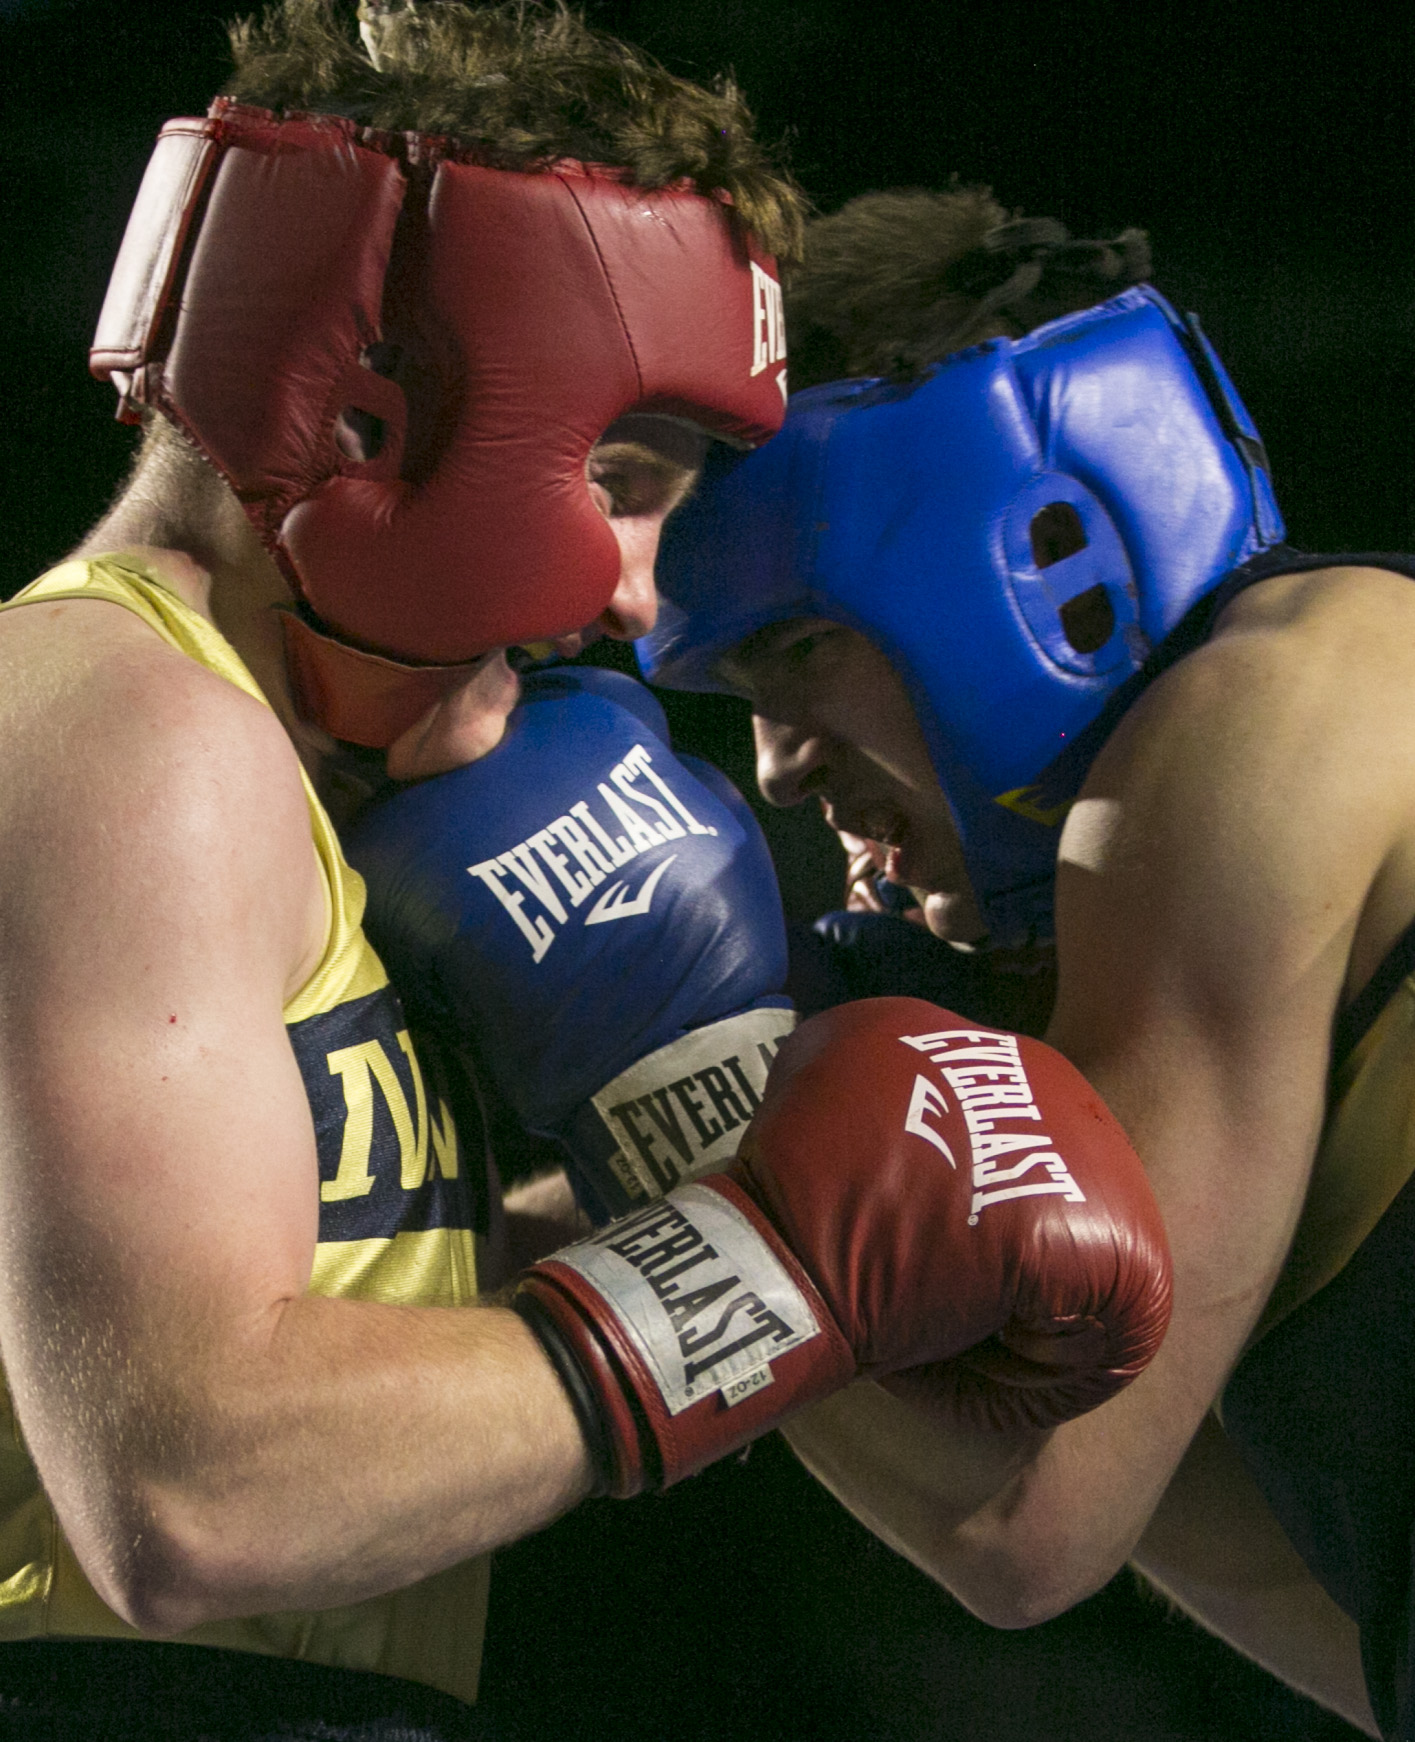 Jay Packer, (in gold) and Charlie Akerblom, (in blue), both from Philadelphia, PA, slug it out in the 185 lb weight class during the United States Naval Academy's 77th Brigade Boxing Championships held on Feb. 23, 2018. Akerblom won the fight. (Alan Lessig/Staff)